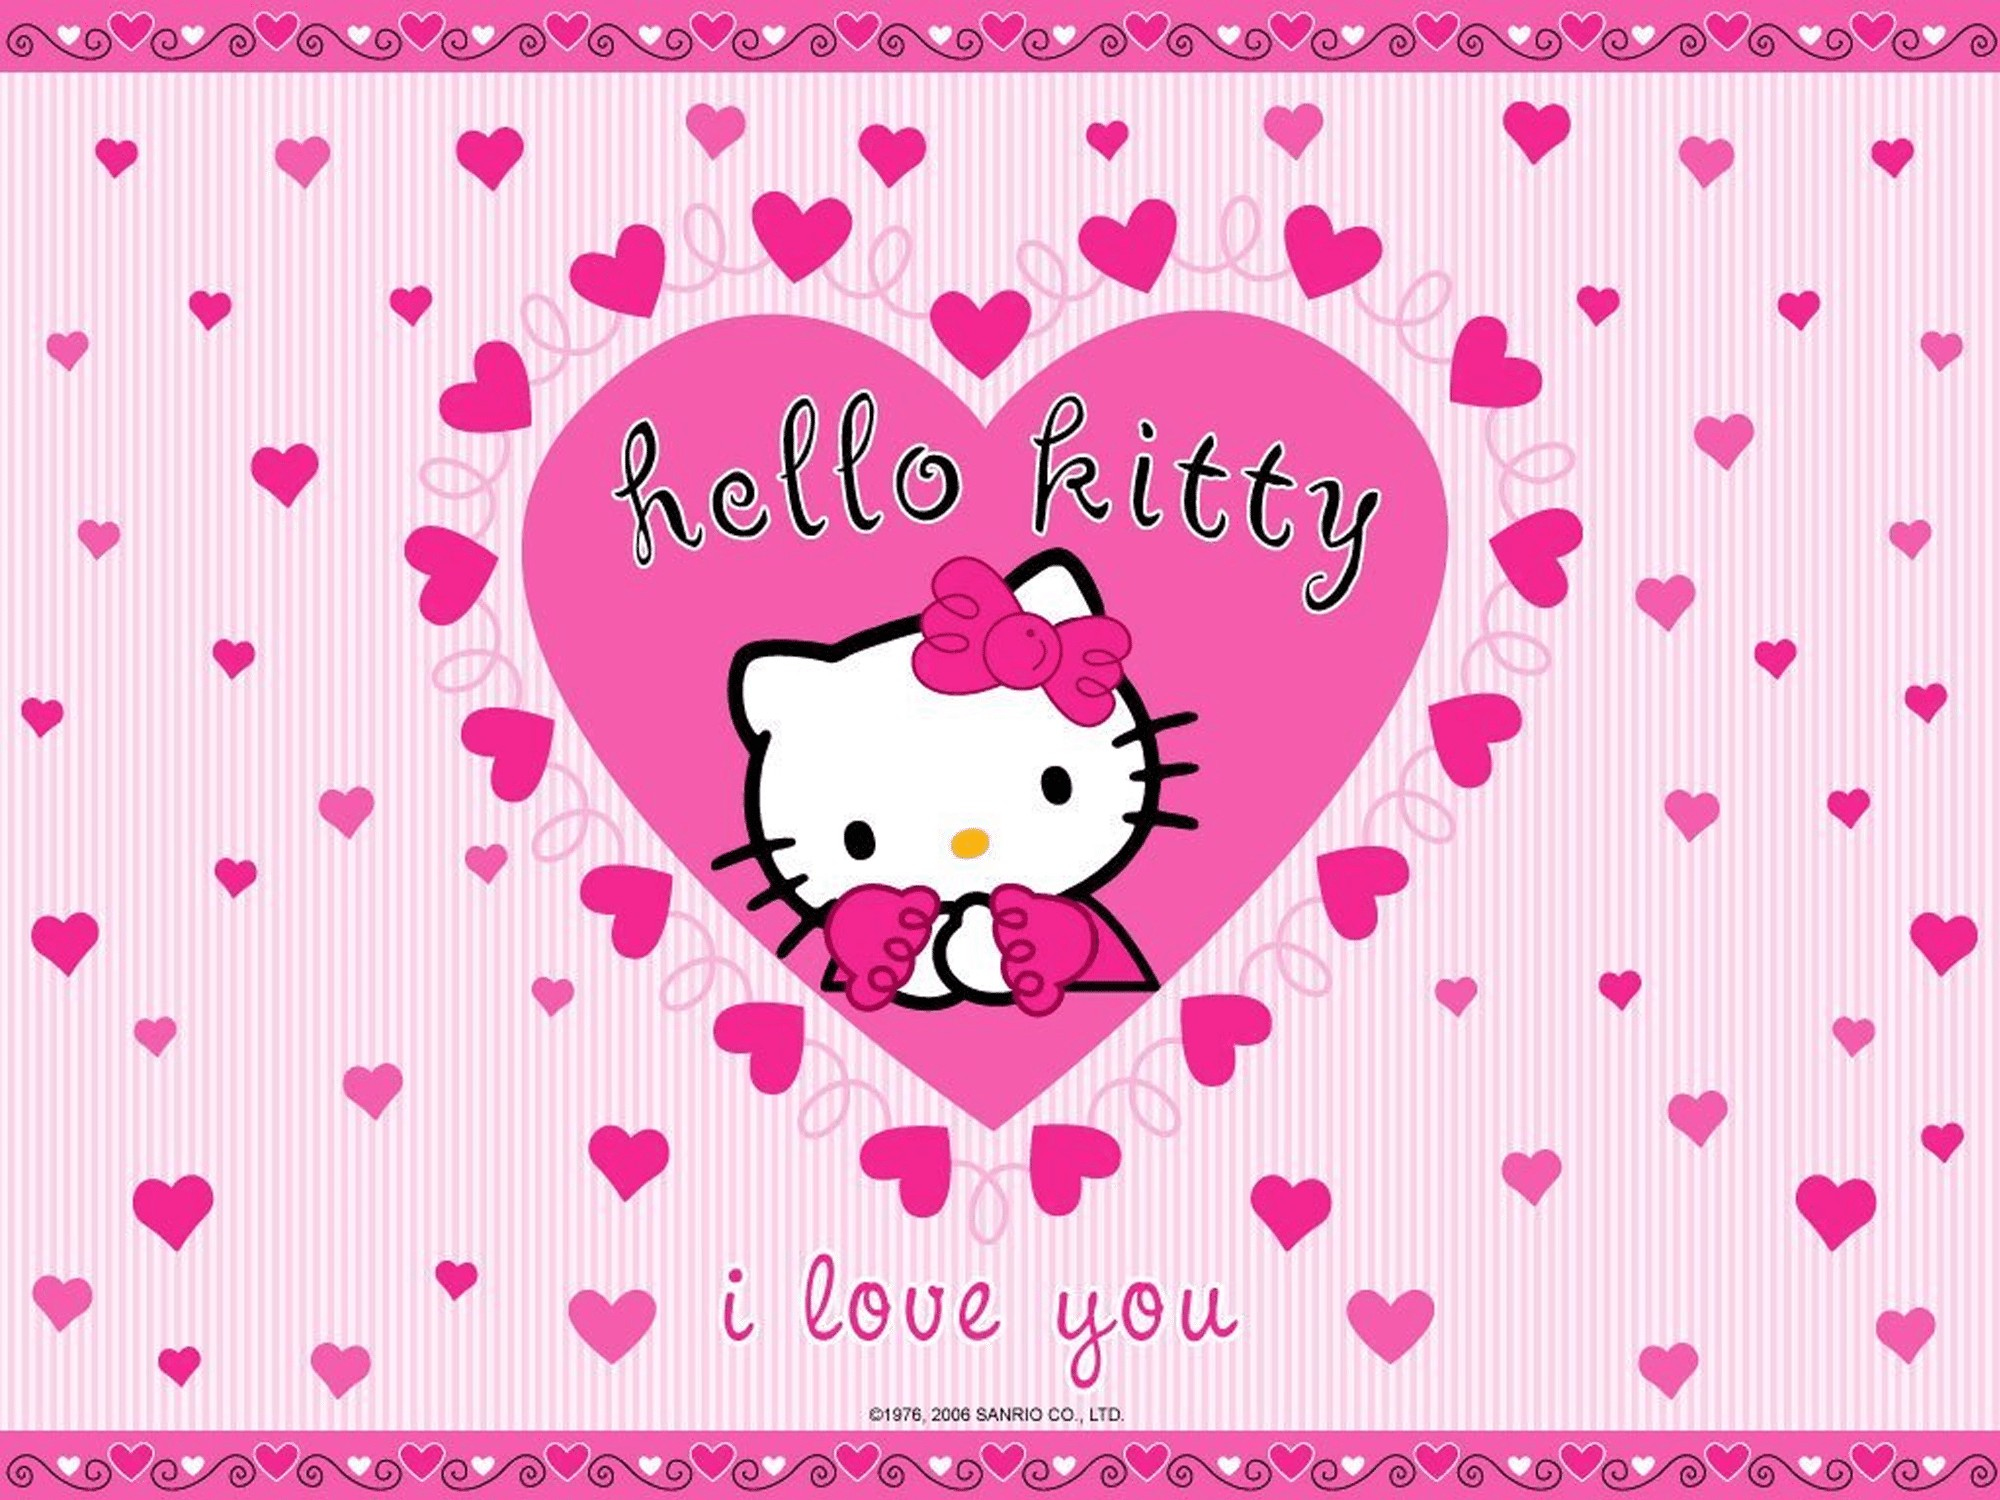 Wonderful Wallpaper Hello Kitty Note 2 - 319478-most-popular-hello-kitty-wallpaper-2000x1500-lockscreen  You Should Have_458945.jpg